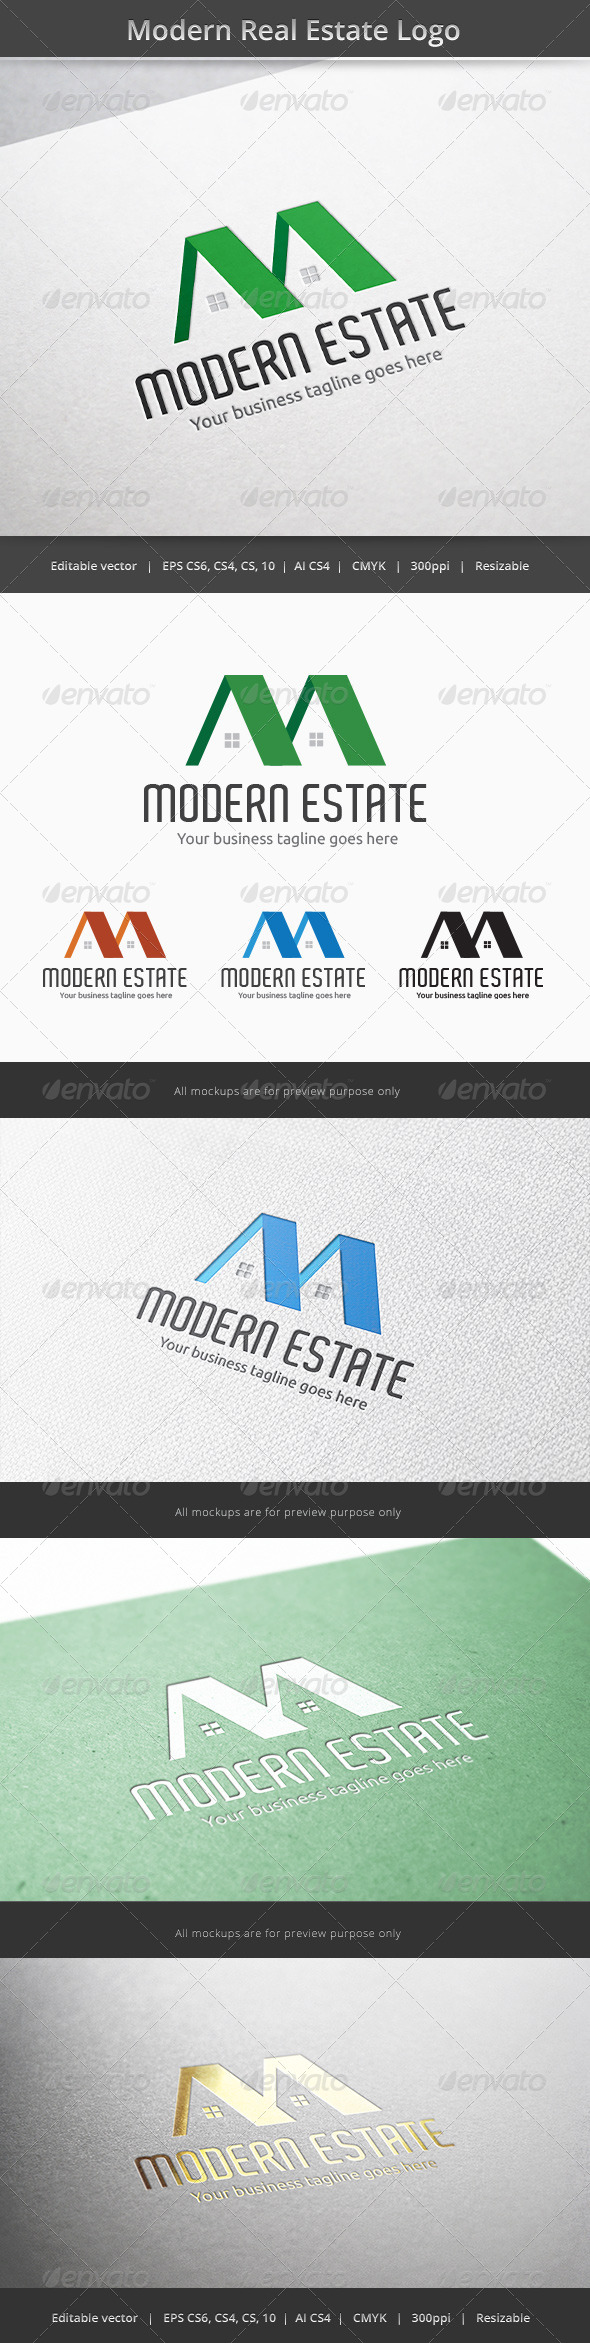 Modern Real Estate Logo - Letters Logo Templates